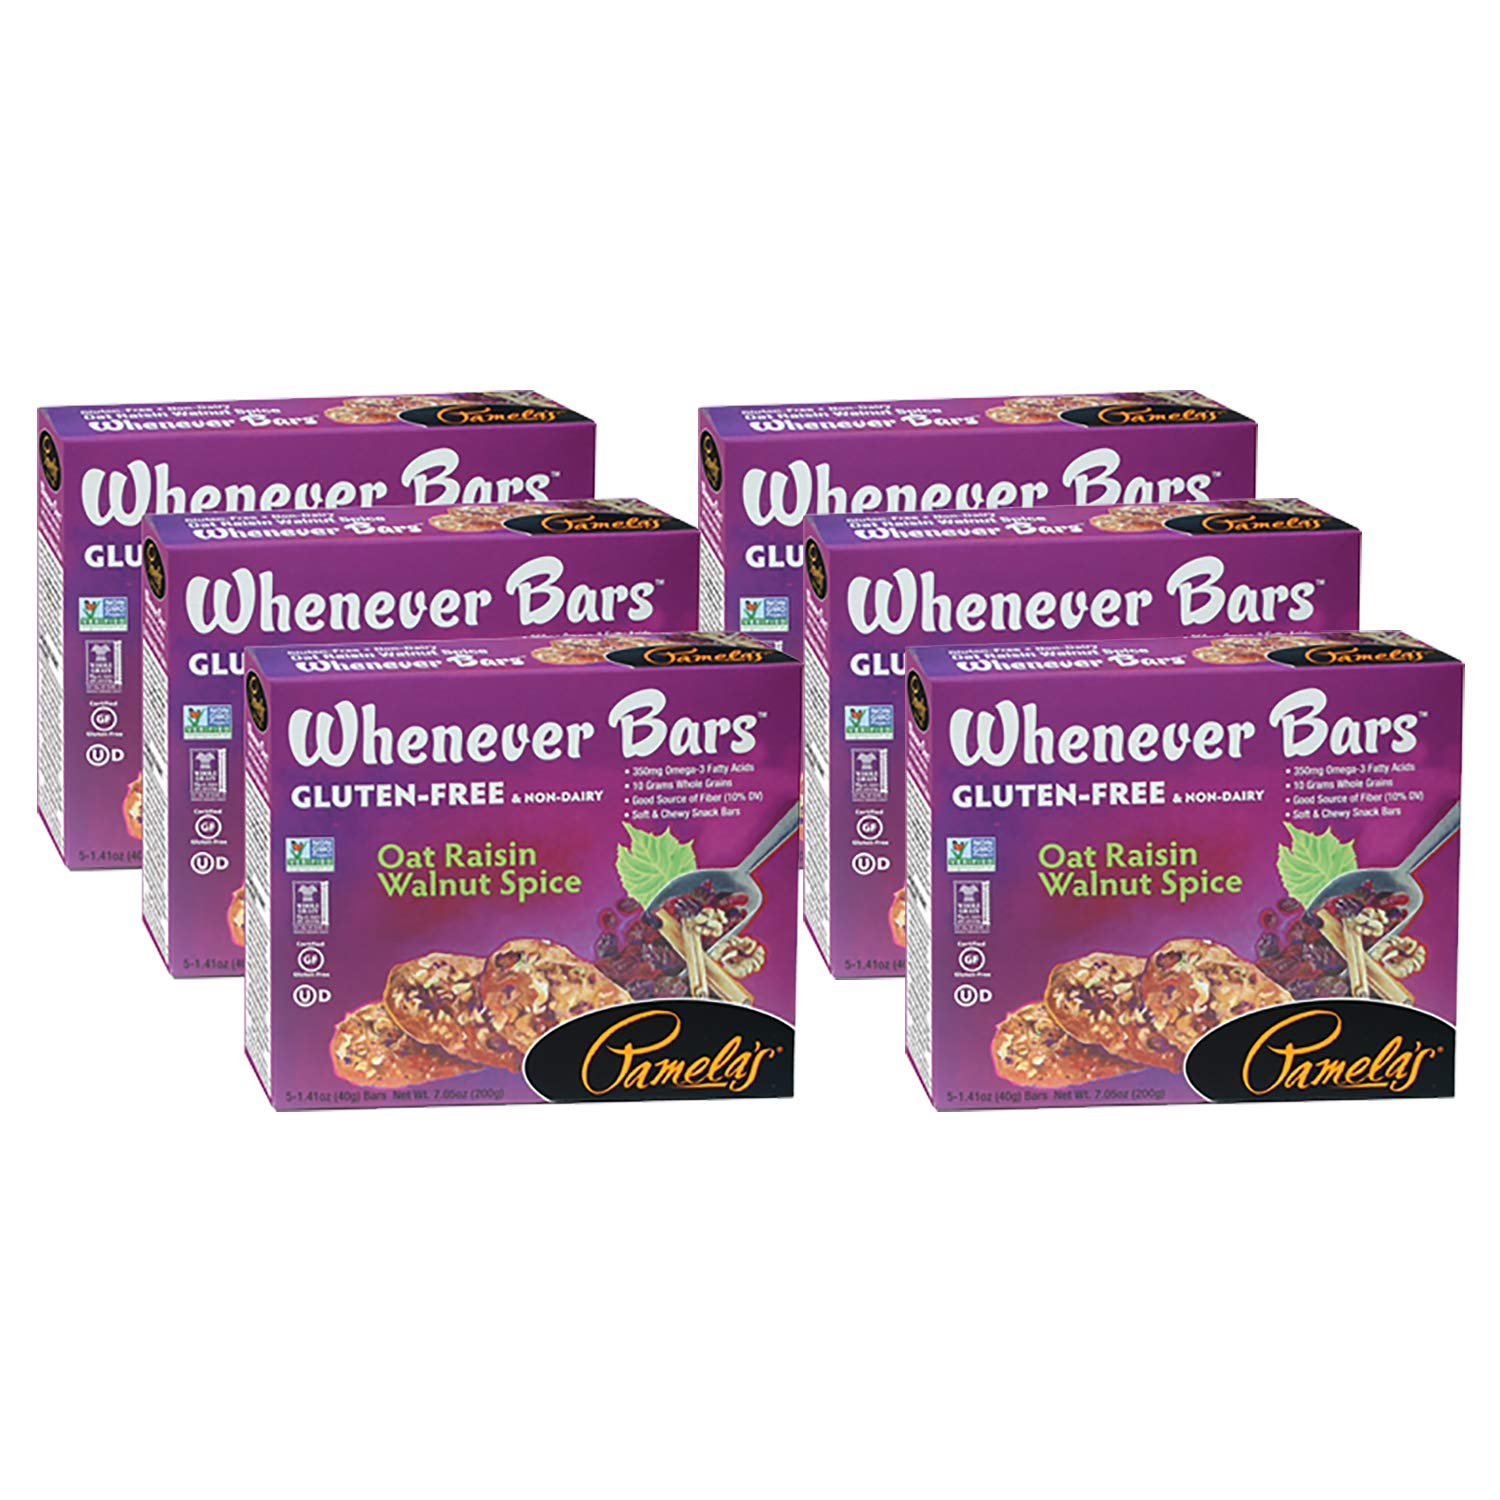 Pamela's Products Whenever Bars Oat Raisin Walnut Spice, 1.41-ounce Bars, 5 Bars per Box, Pack of 6 Boxes (Total 30 Bars)